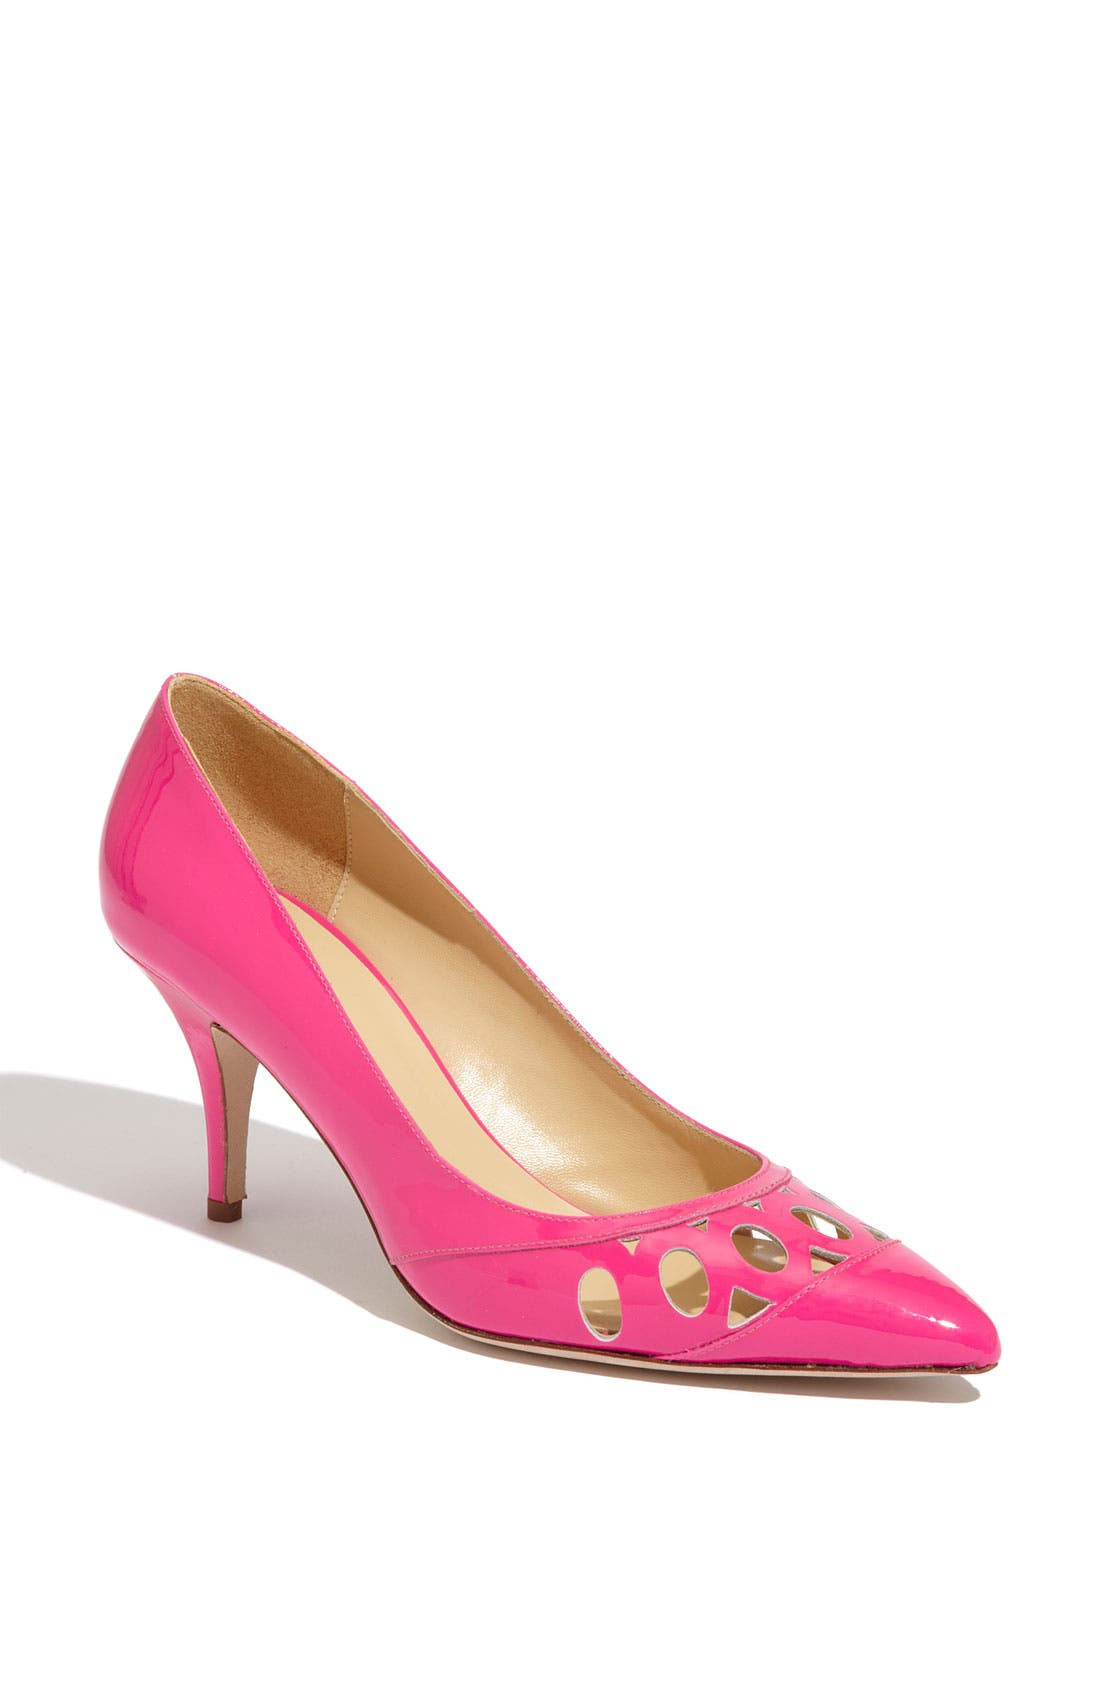 Main Image - kate spade new york 'thelma' pump